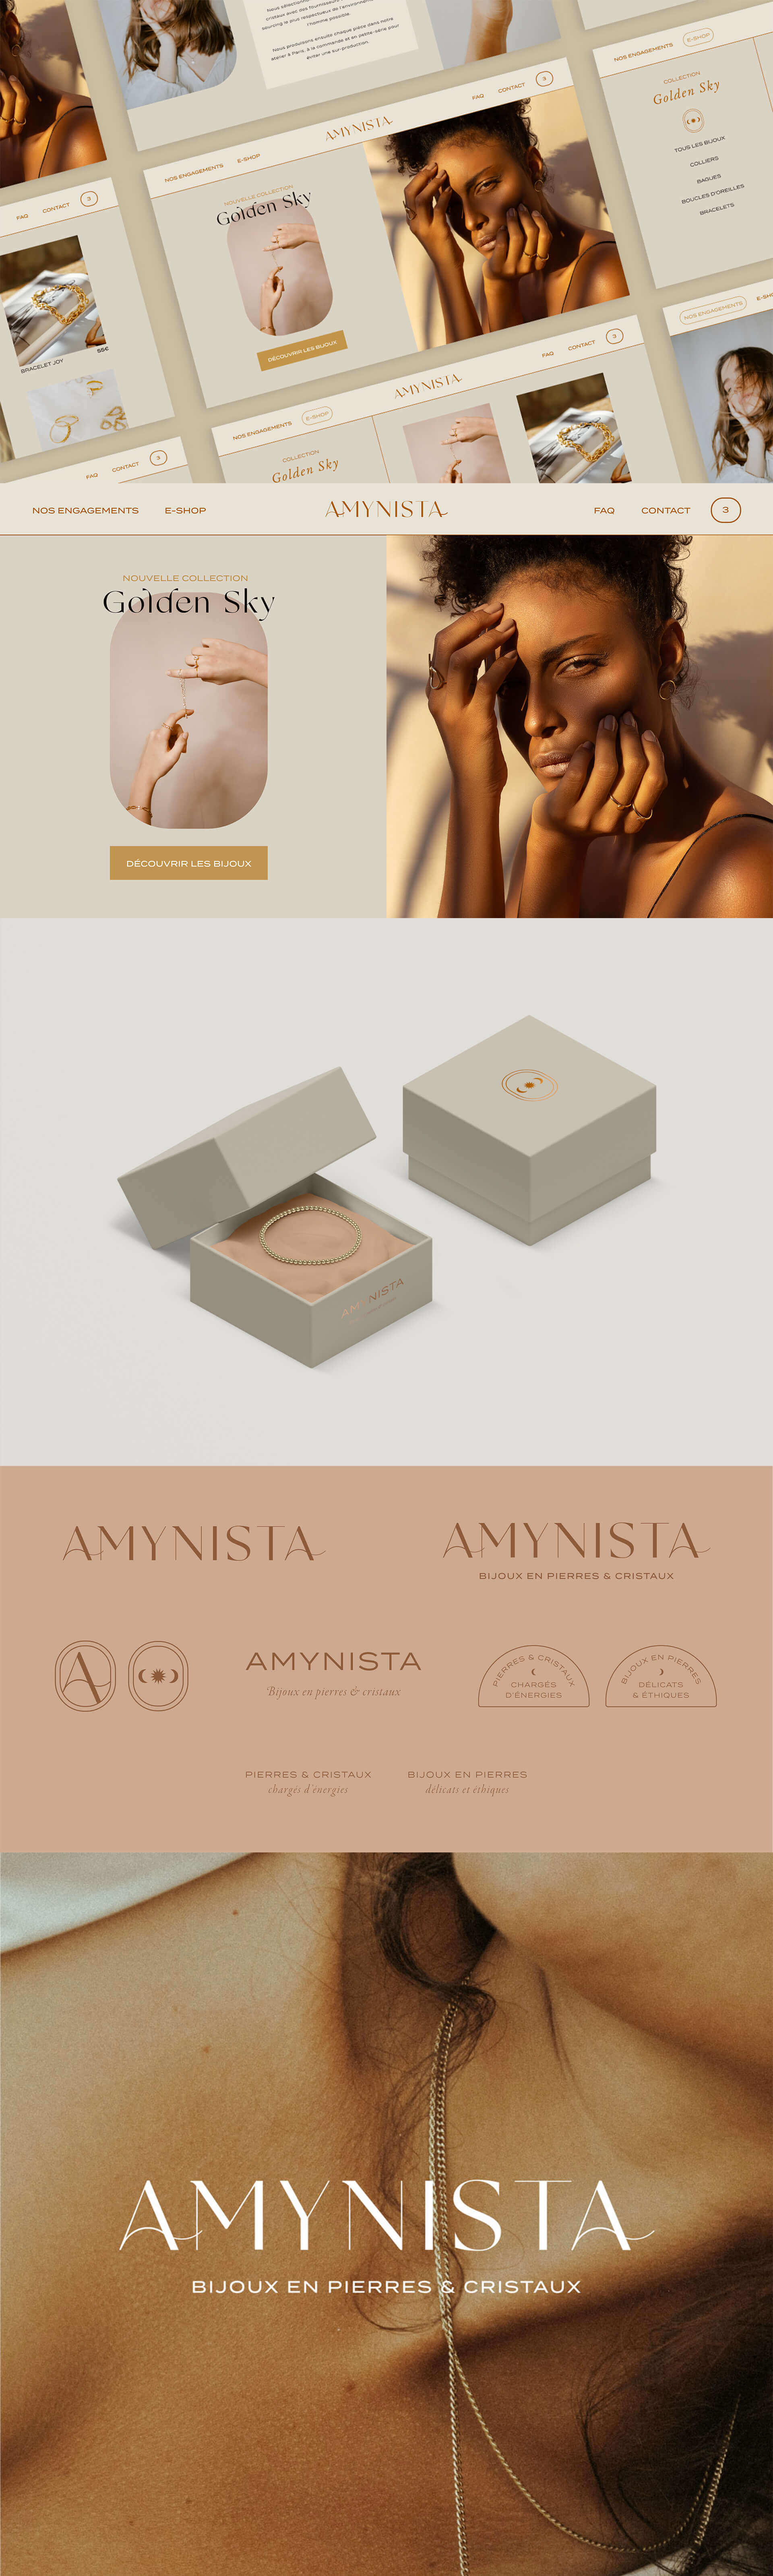 Preview image for web design and SEO project for Amynista